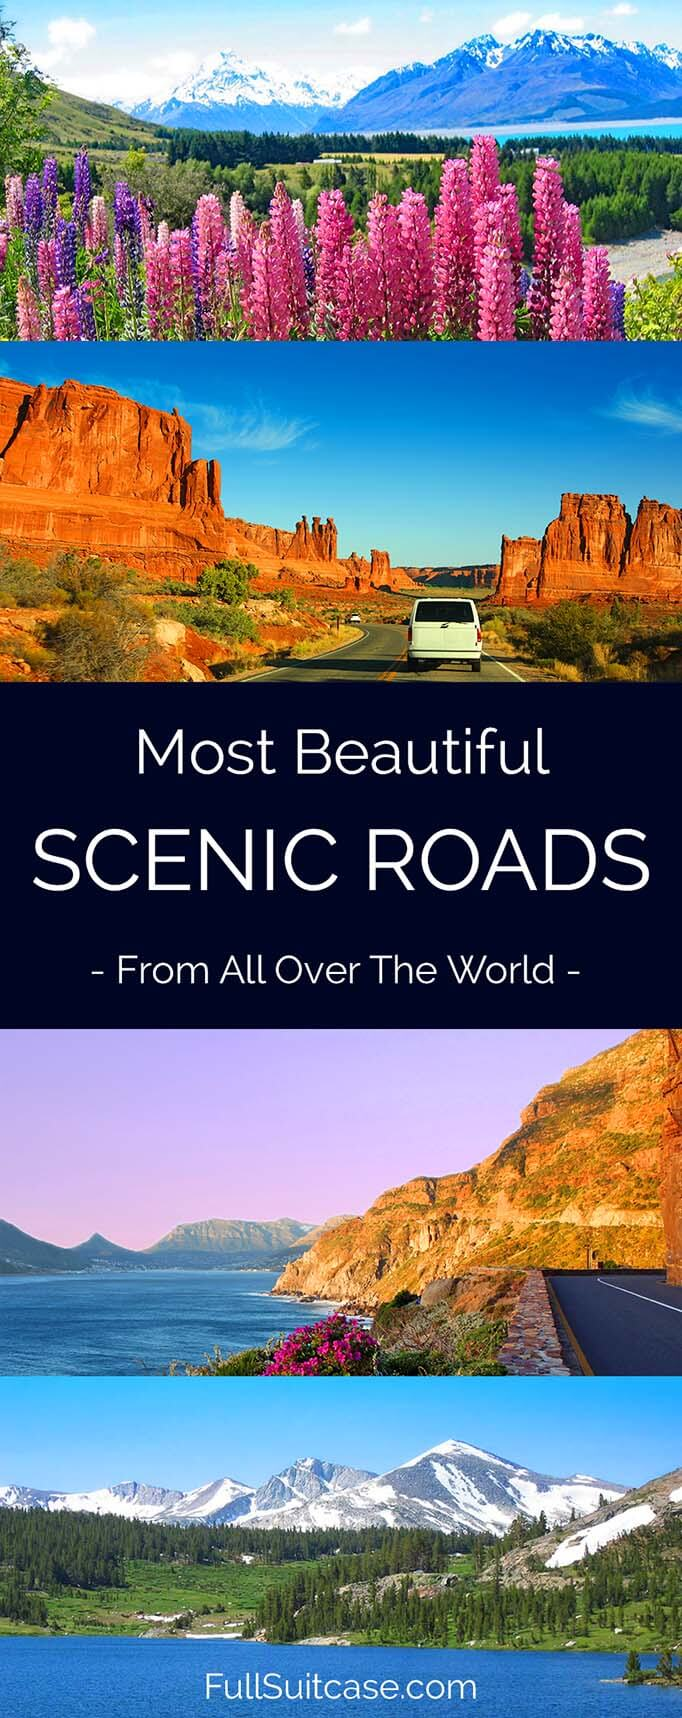 17 most beautiful scenic drives and road trips from all over the world